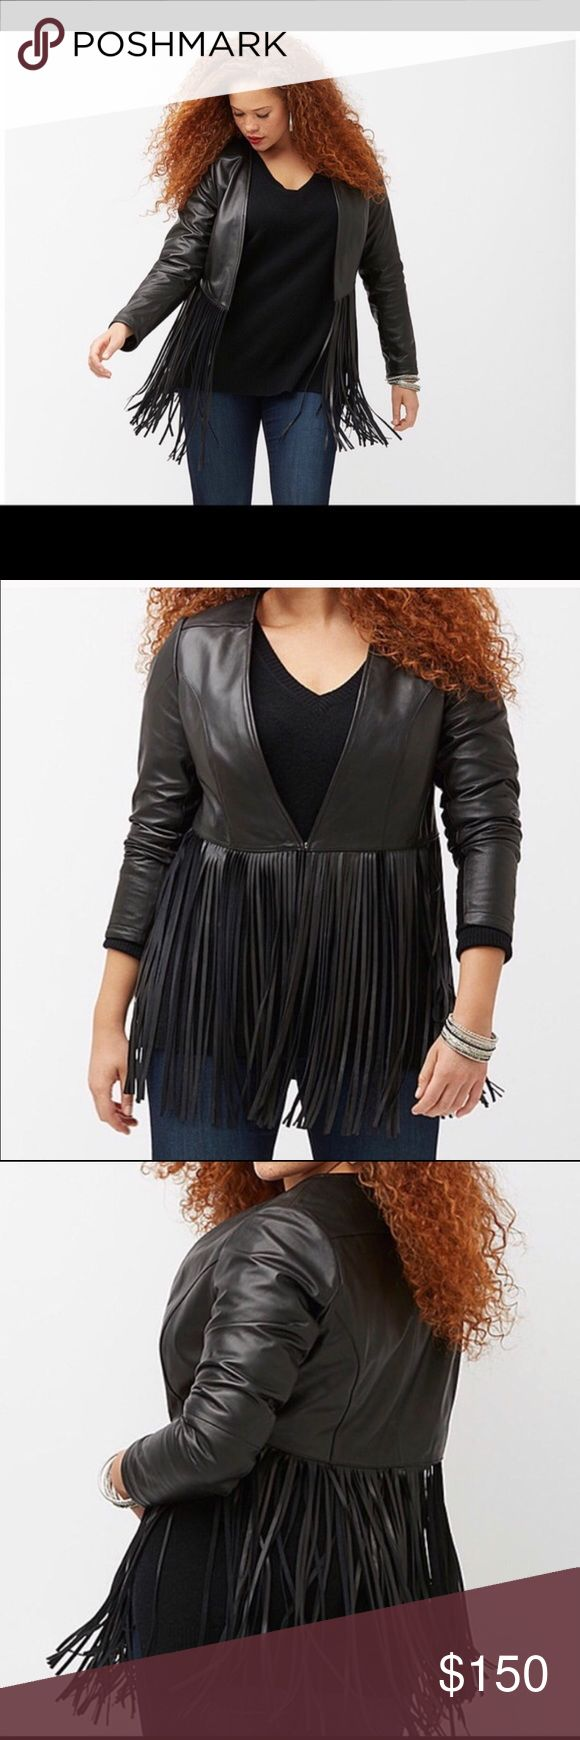 PLUS size amazing leather jacket with fringe 18/20 This jacket is amazing. It's from lane bryant and new with tags still on hanger. Never worn. Paid $500 for it, so price is FIRM. Thanks for looking. Lane Bryant Jackets & Coats Blazers